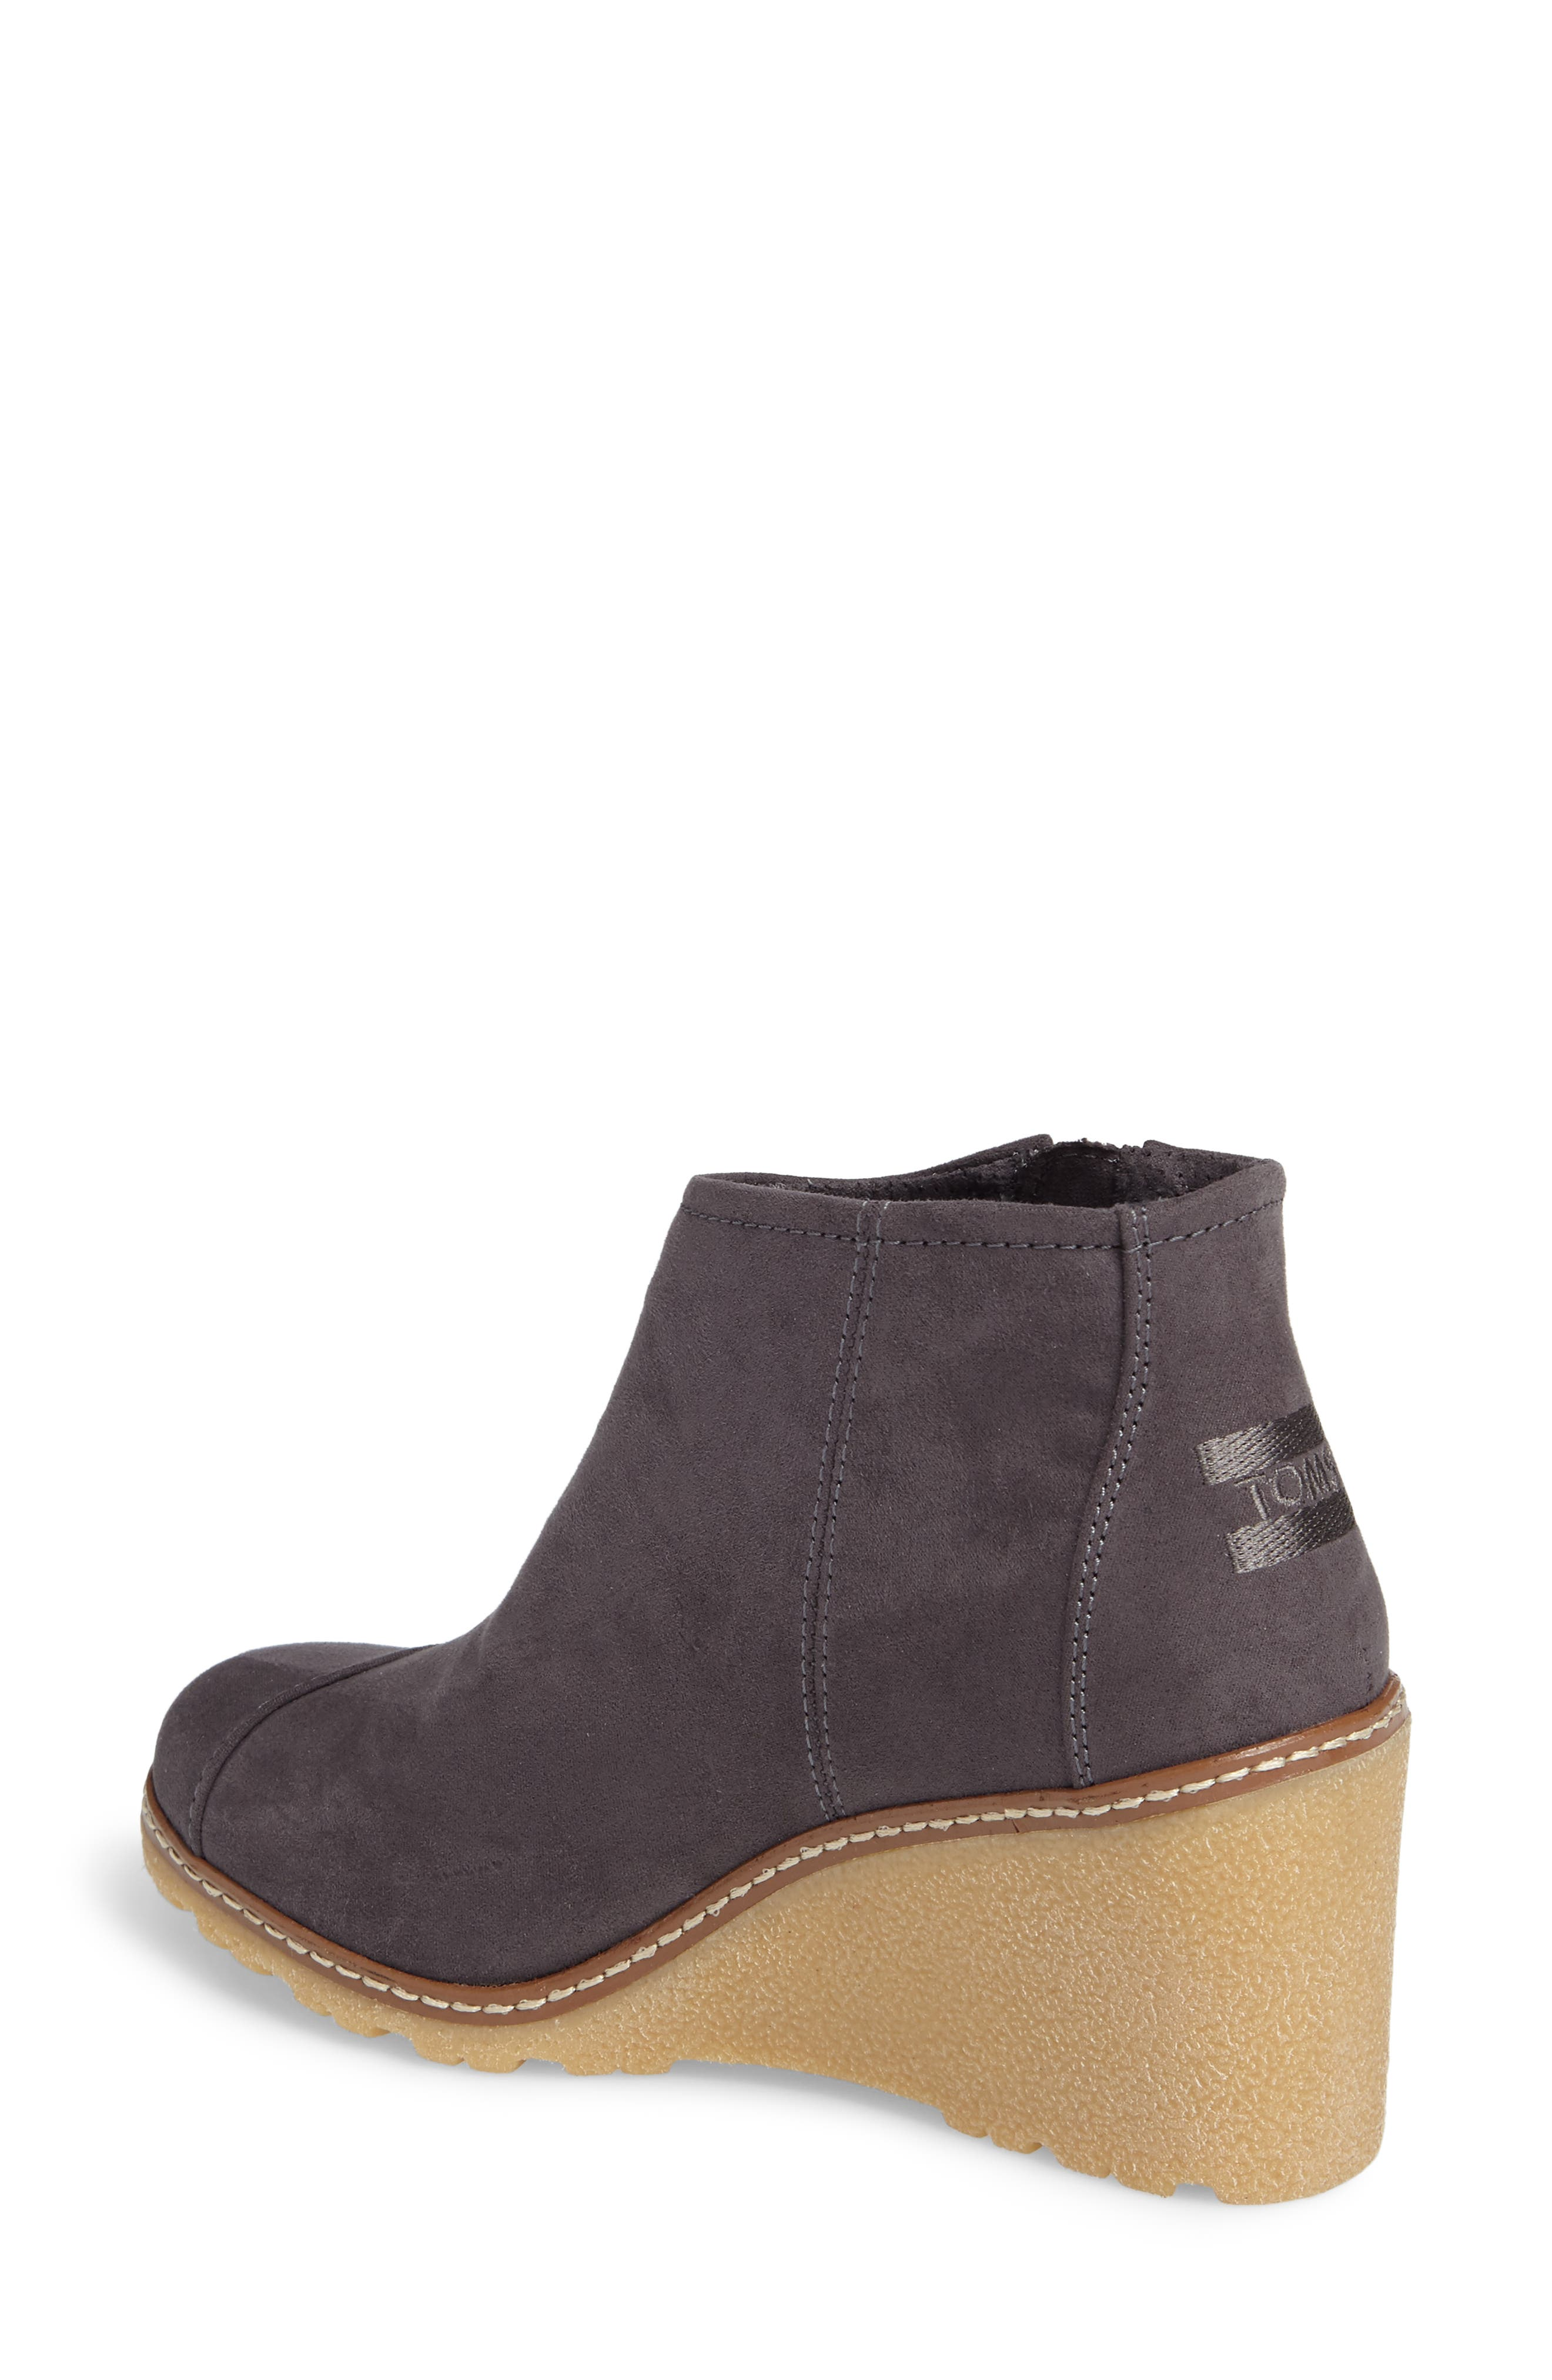 Avery Wedge Bootie,                             Alternate thumbnail 6, color,